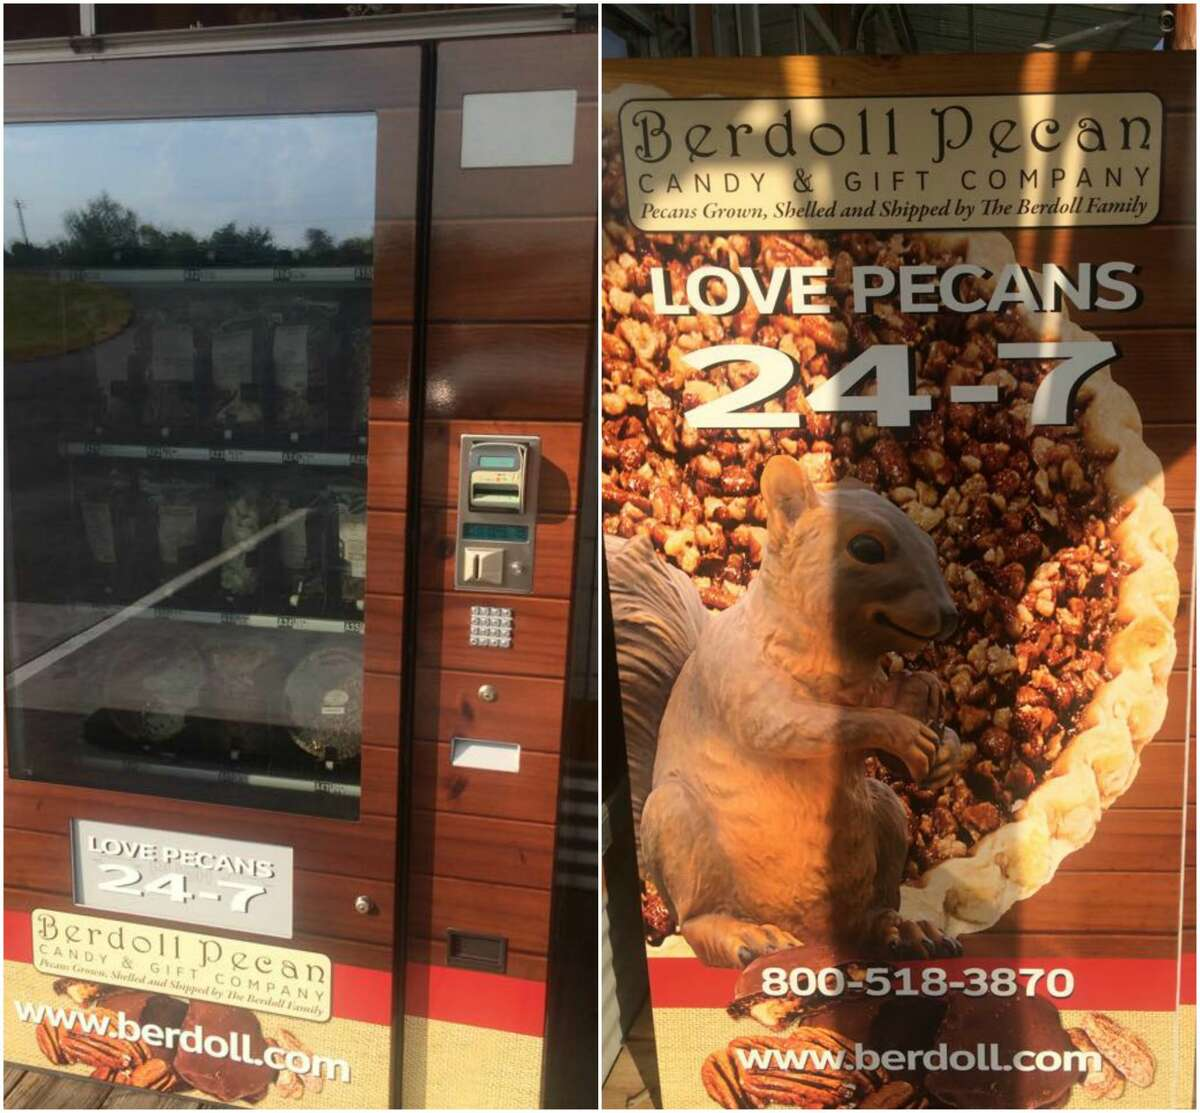 PHOTOS: The best small-town Texas food festivals Wanderlust website Atlas Obscura recently reminded us that you can buy pecan pie, candy, and pecans anytime of day in front of Berdoll Pecan Candy and Gift Company in Cedar Creek. See where the best small town food festivals are in Texas...